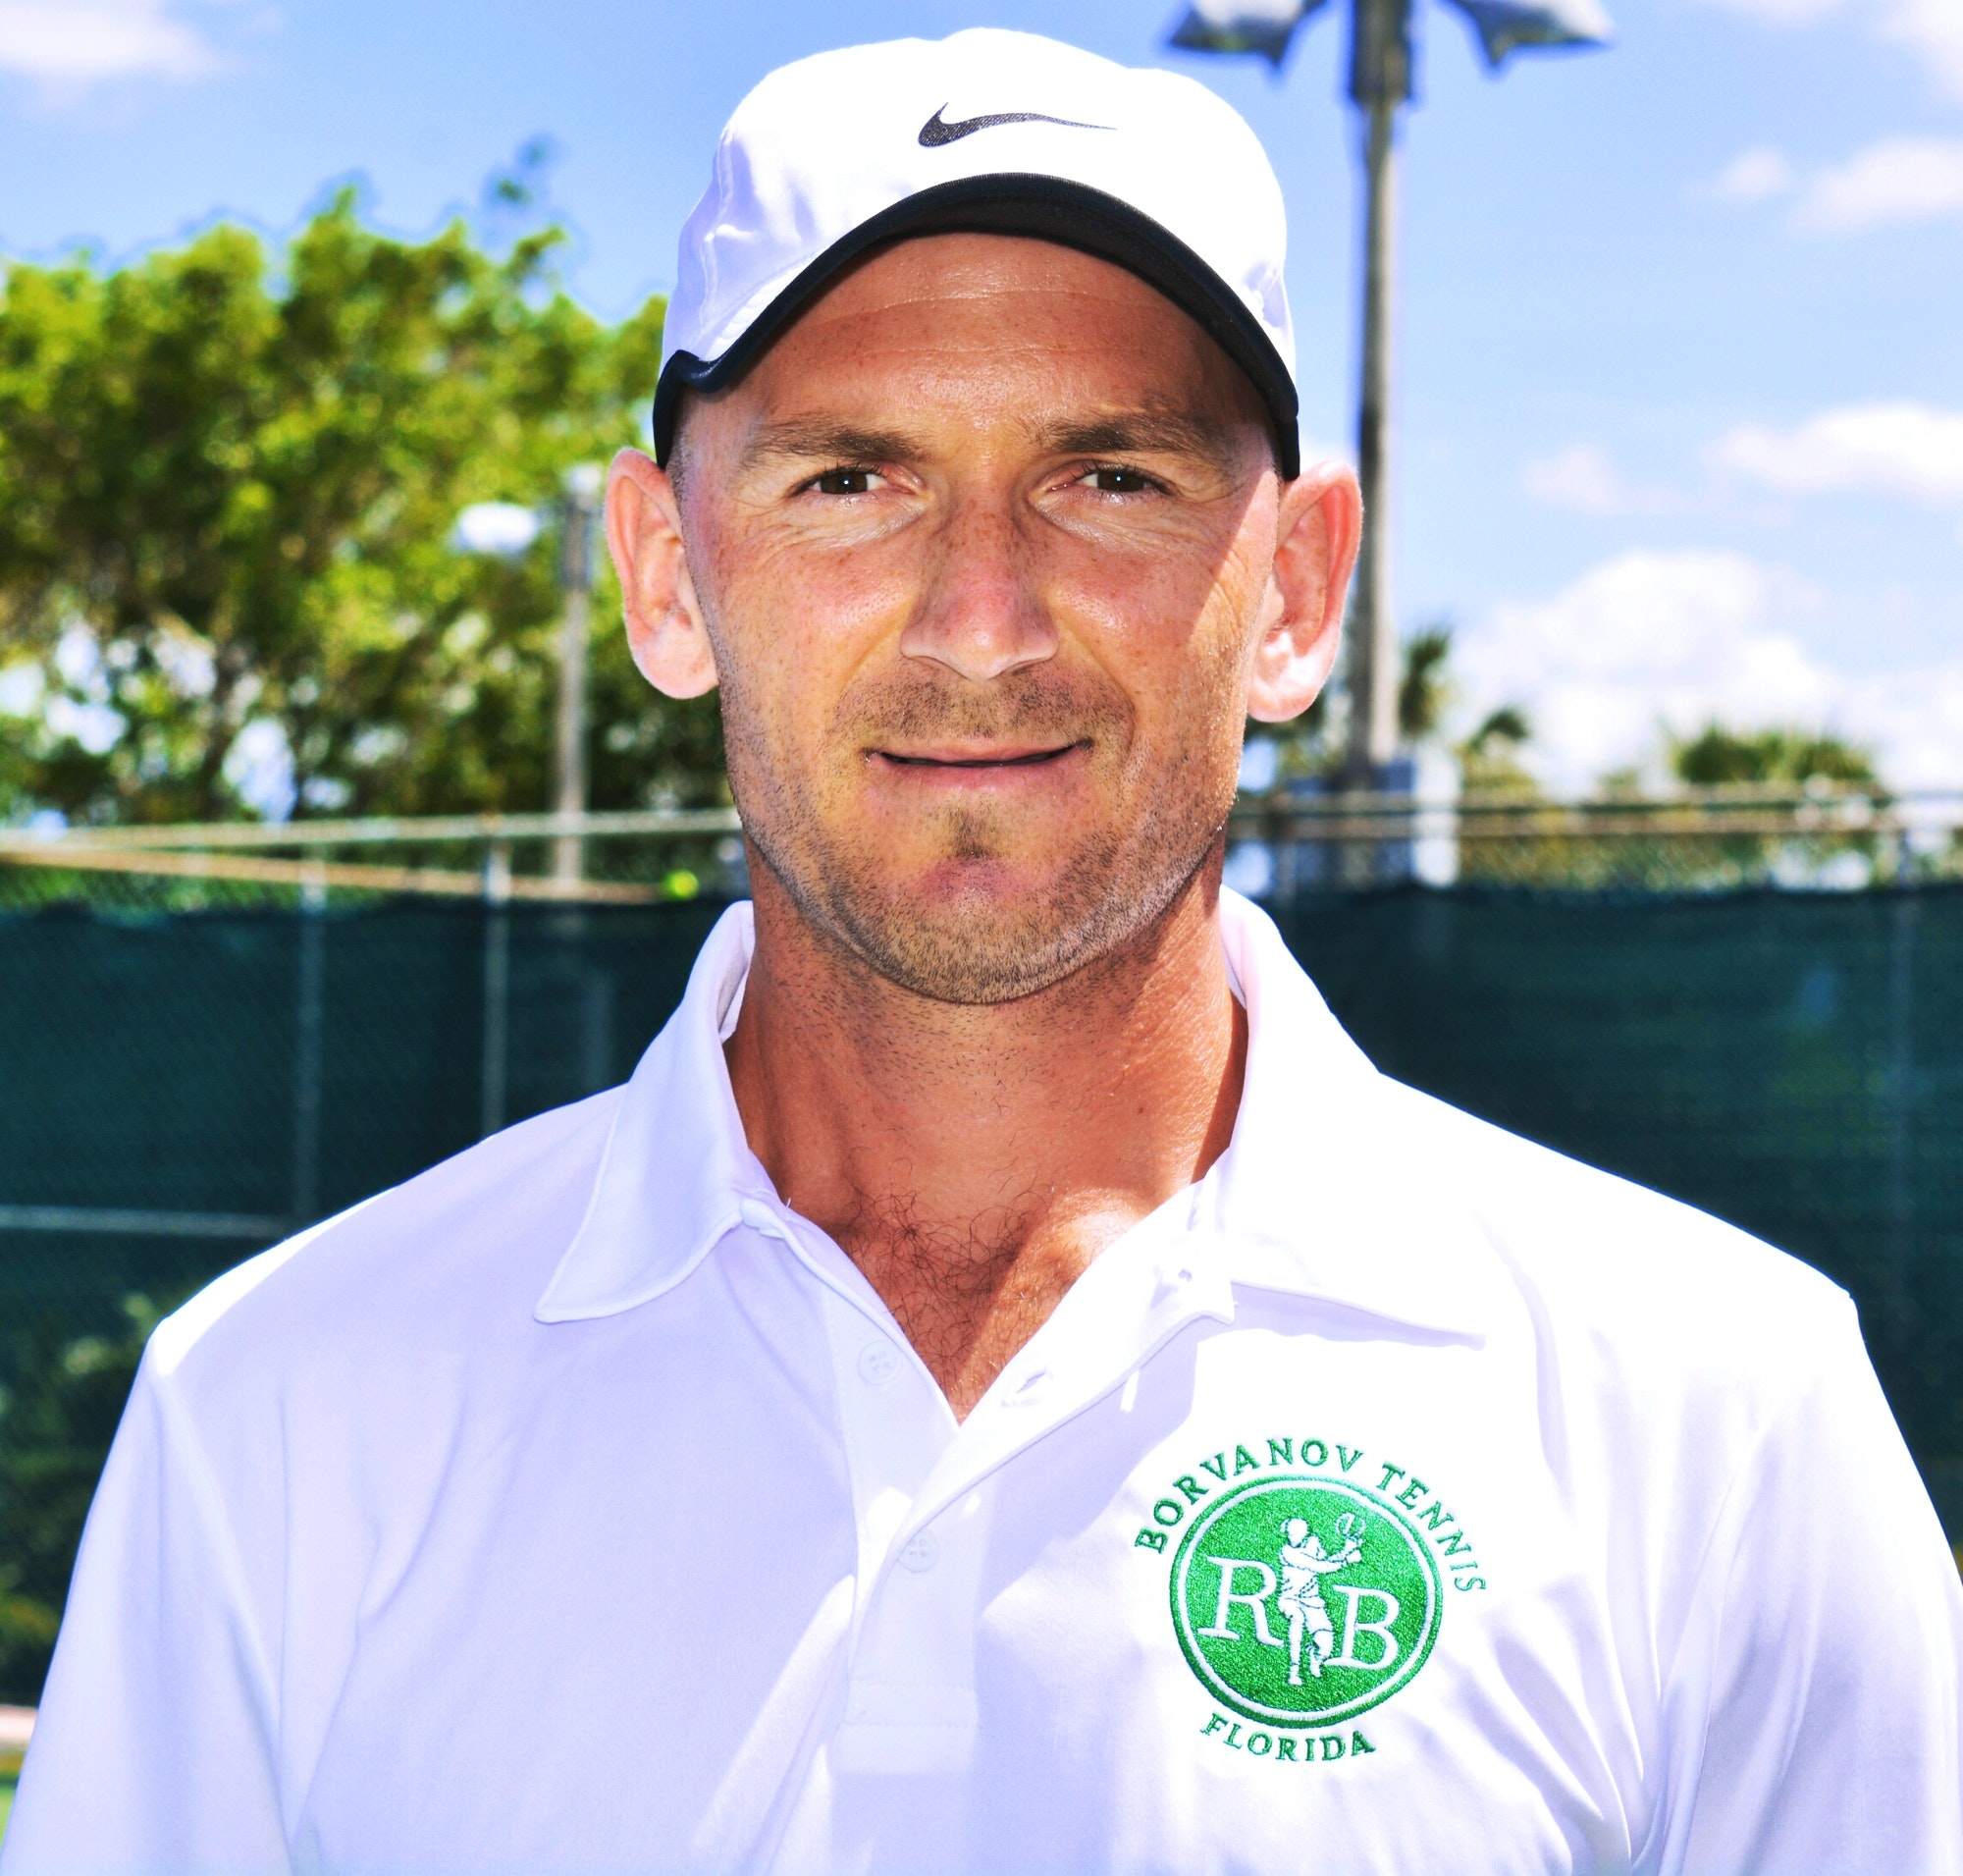 Roman B. teaches tennis lessons in Pembroke Pines, FL